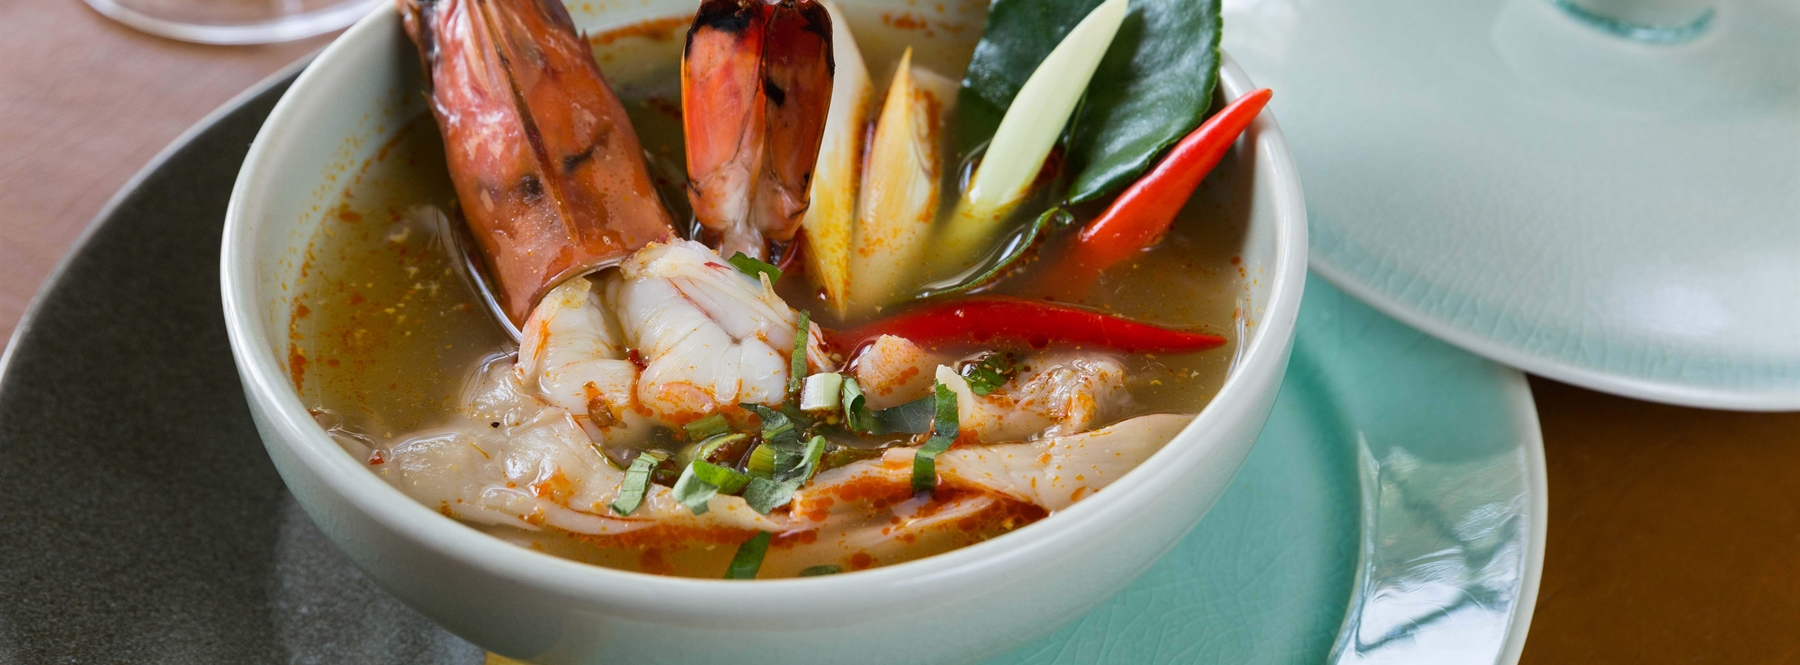 Spice Tom Yum Goong hot and sour tiger prawns